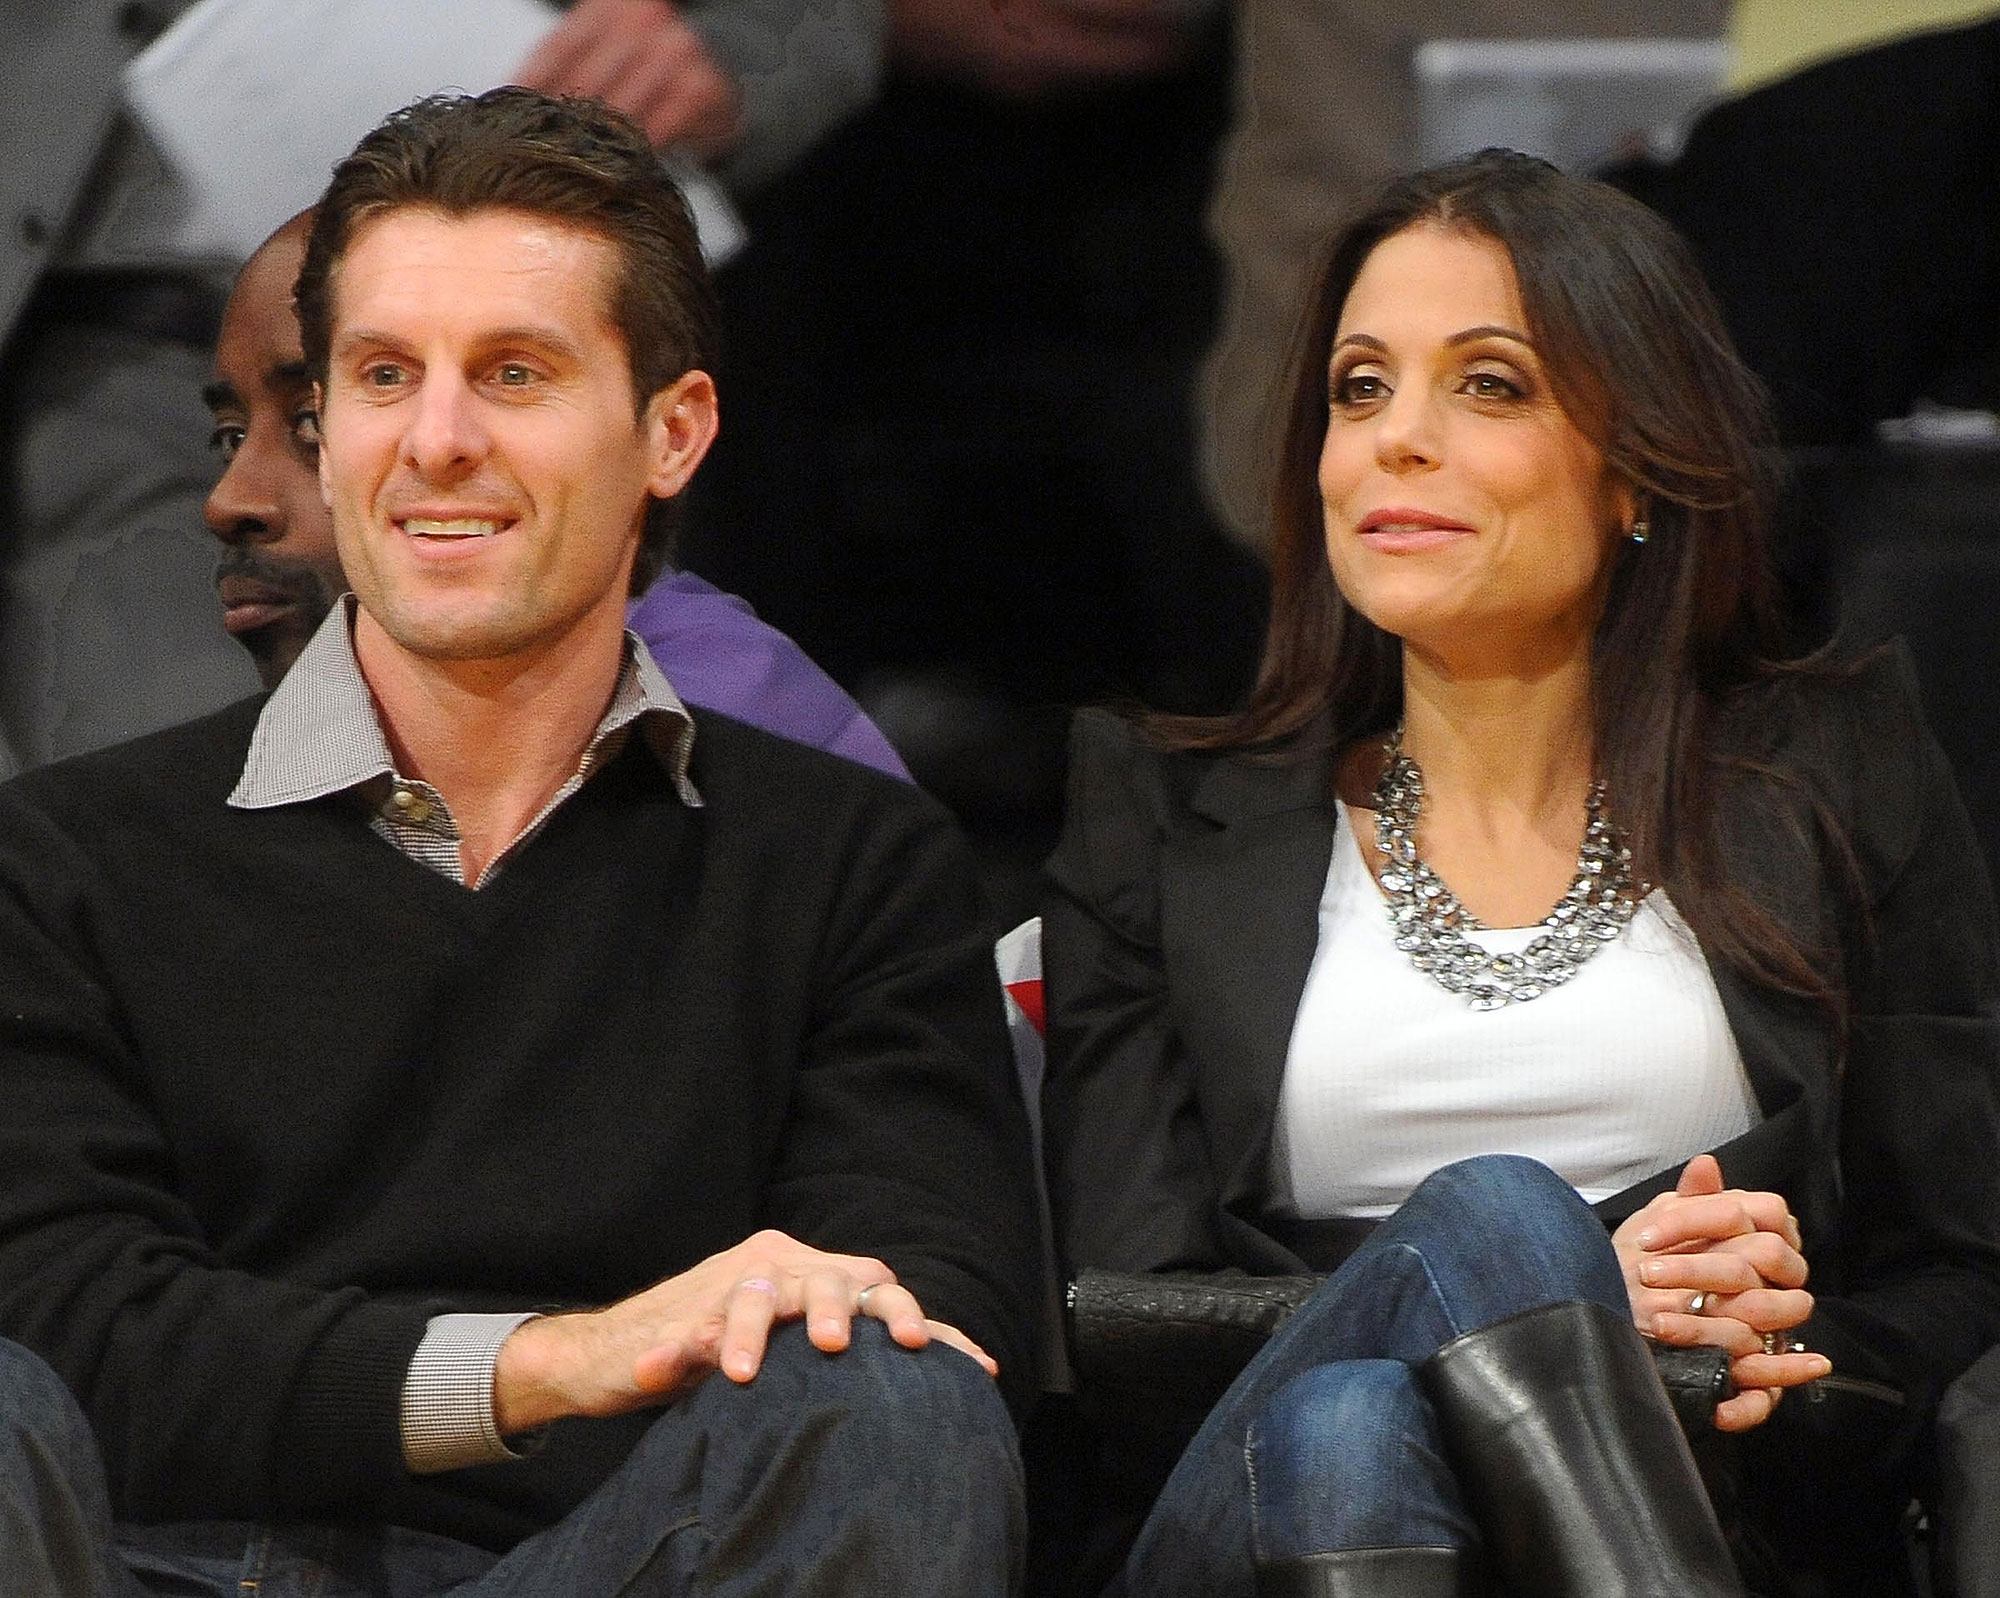 BETHENNY FRANKEL AND JASON HOPPY CUDDLING AT THE LAKERS GAME